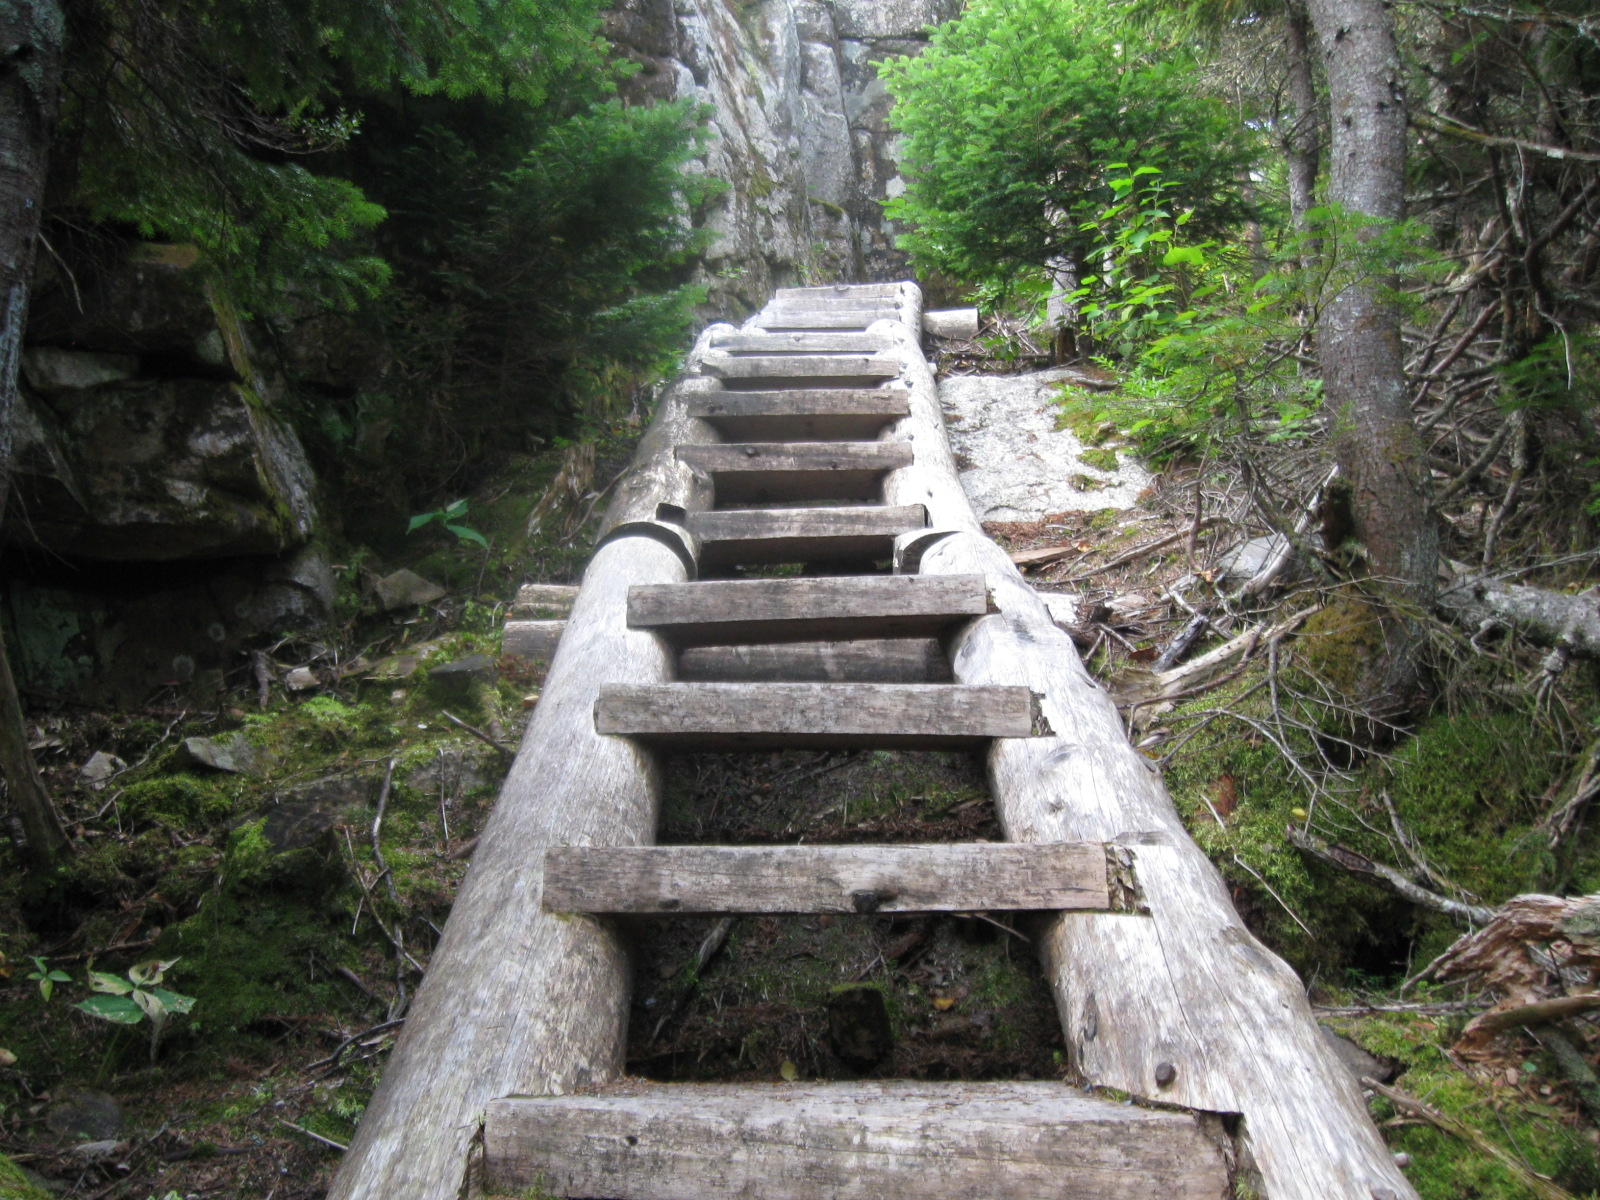 One of the easy ladders on Sunday River Whitecap near where I met a moose one humid Sunday morning